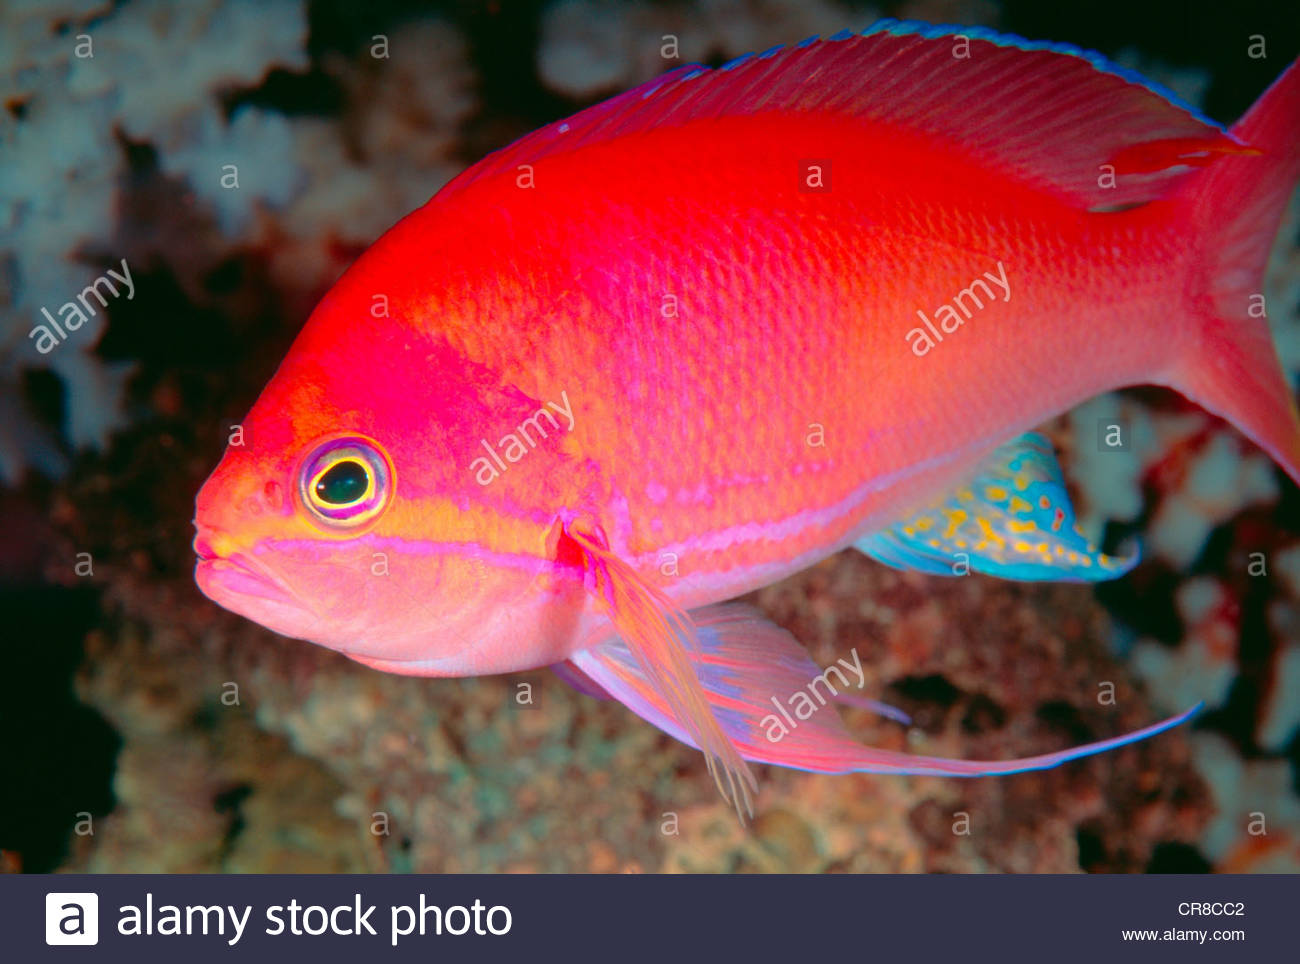 Close up of a bright tropical fish stock photo royalty for Photos of fish